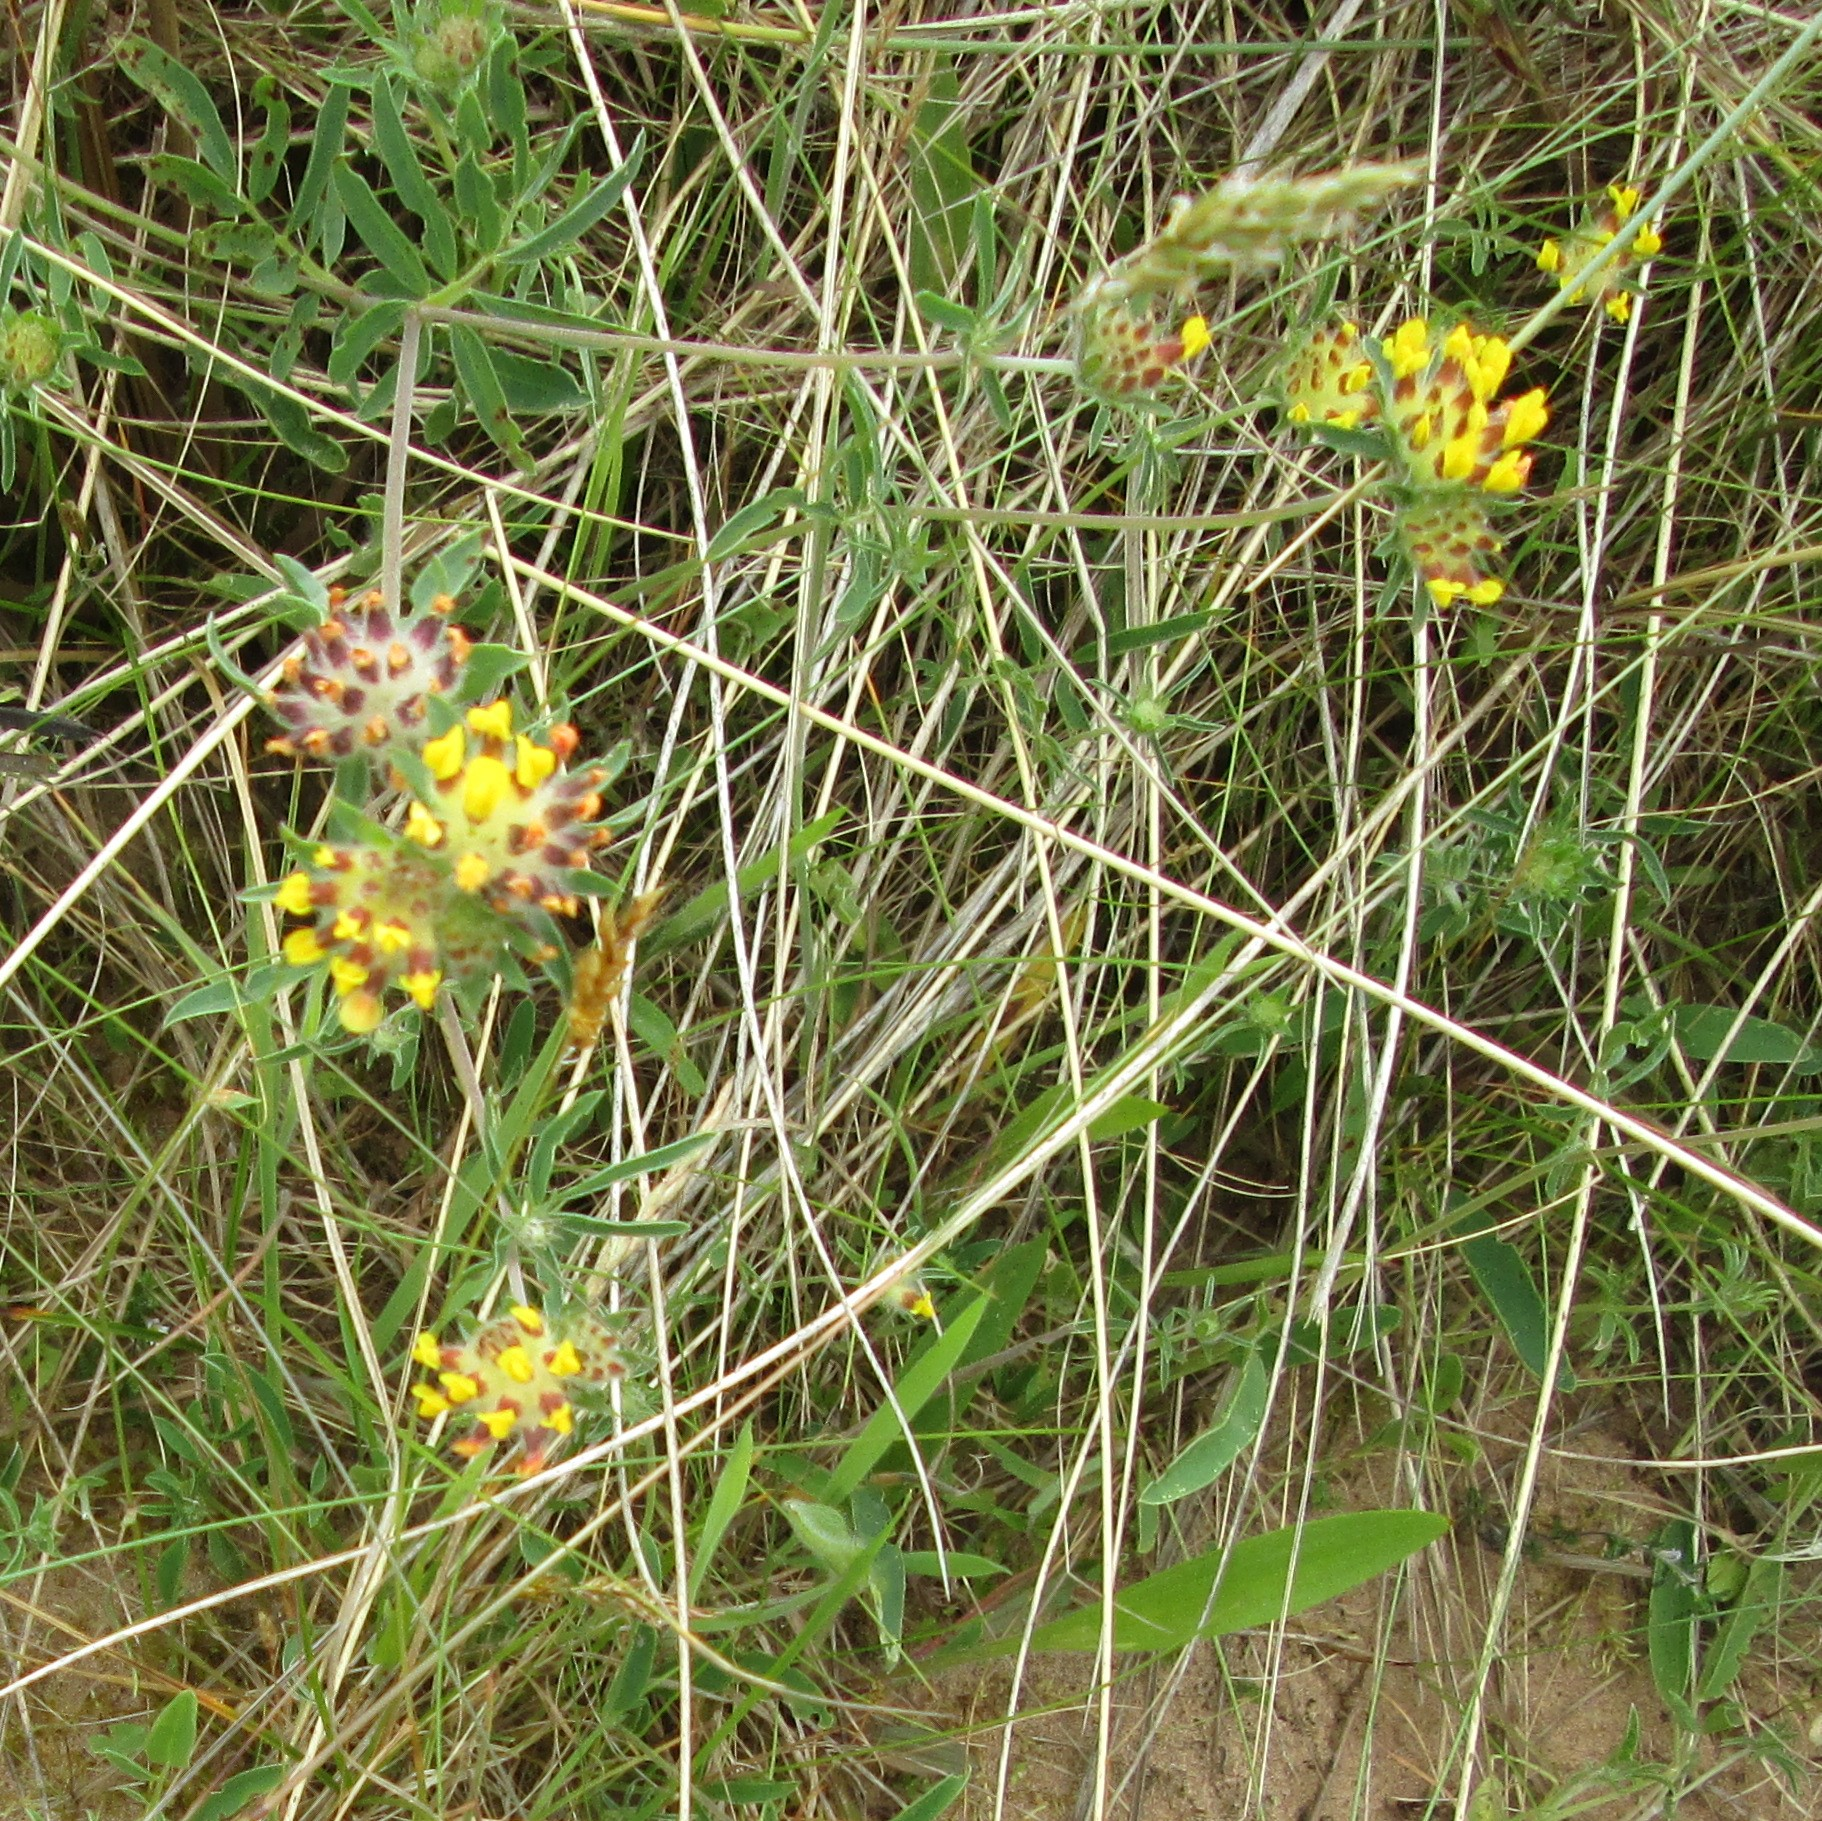 Irvine Beach Park Kidney Vetch